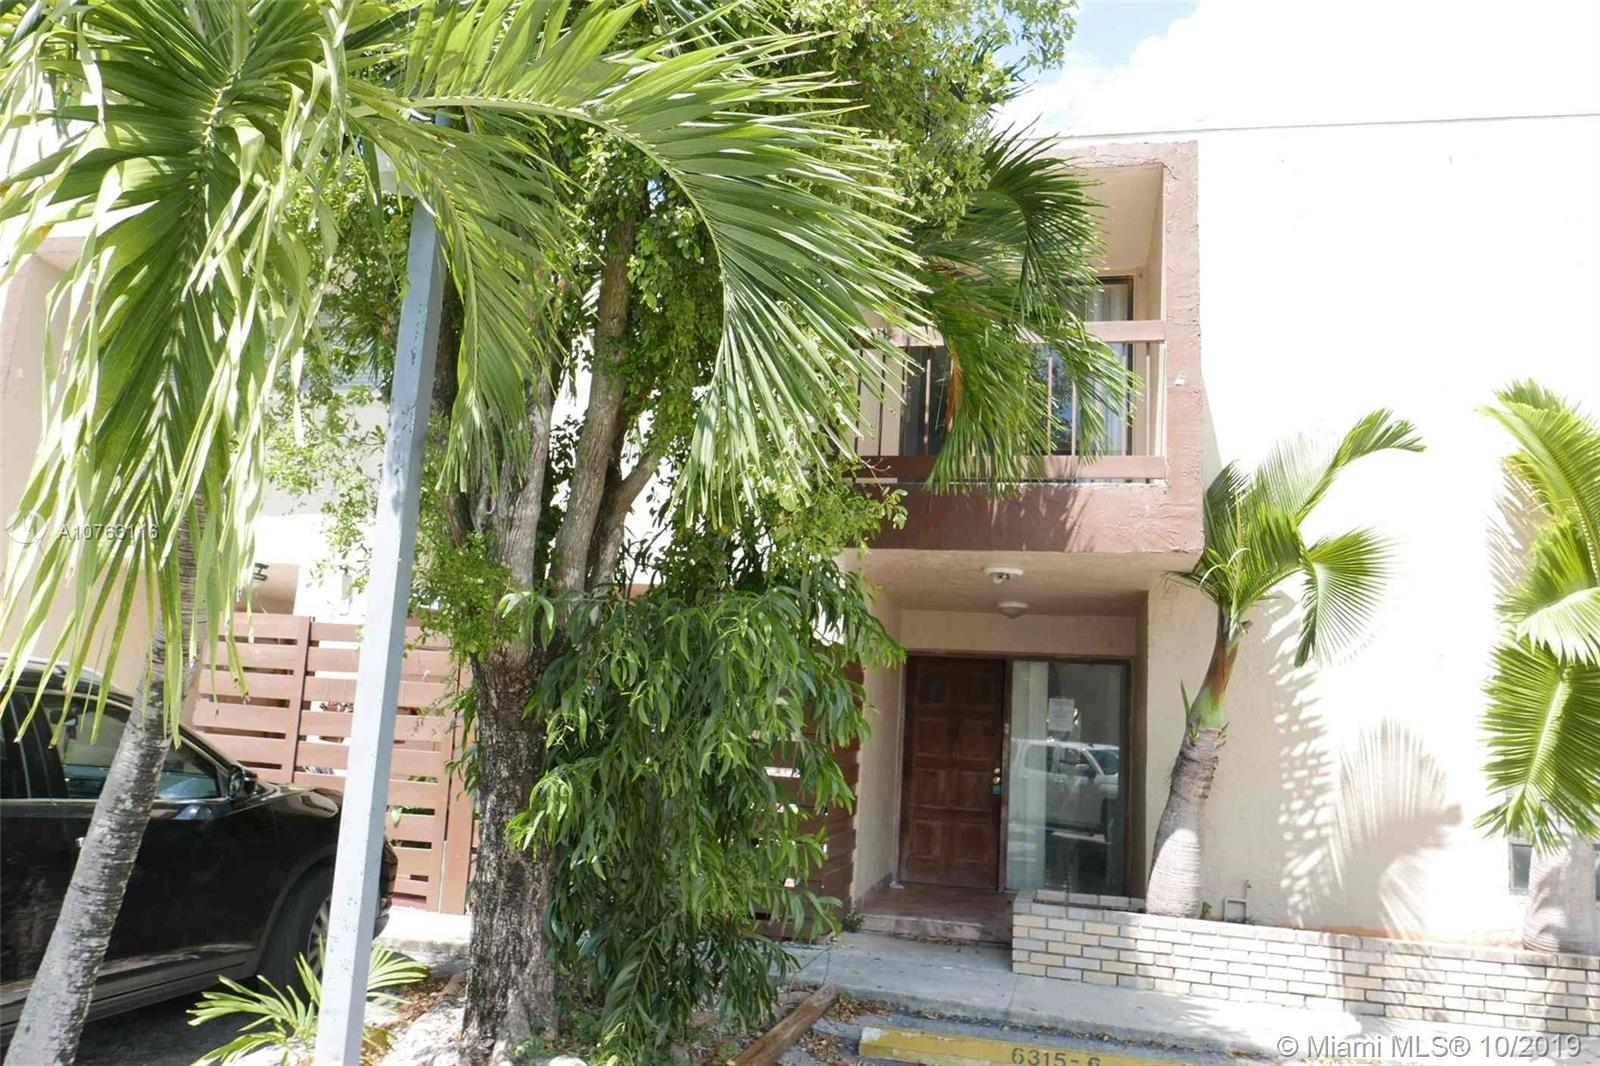 6315 SW 138TH CT #6315-6 For Sale A10763116, FL